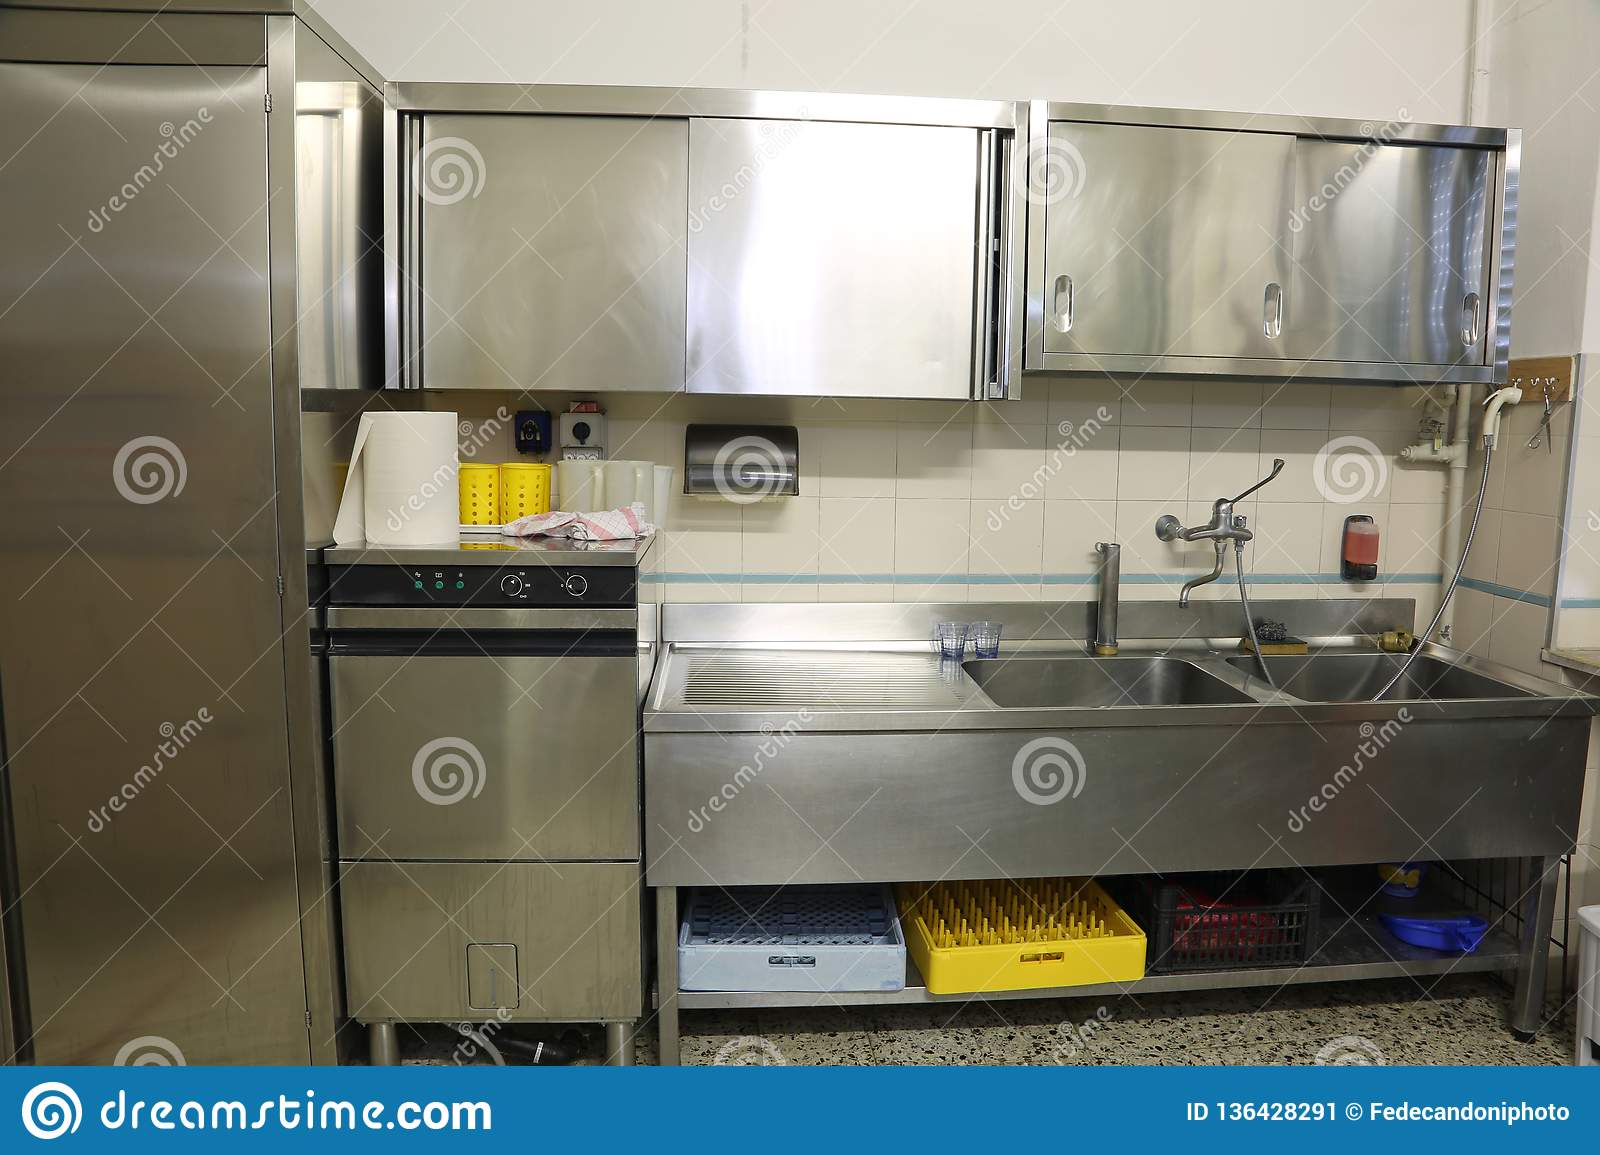 Wide Kitchen With Large Steel Sink And Industrial Dishwasher ...